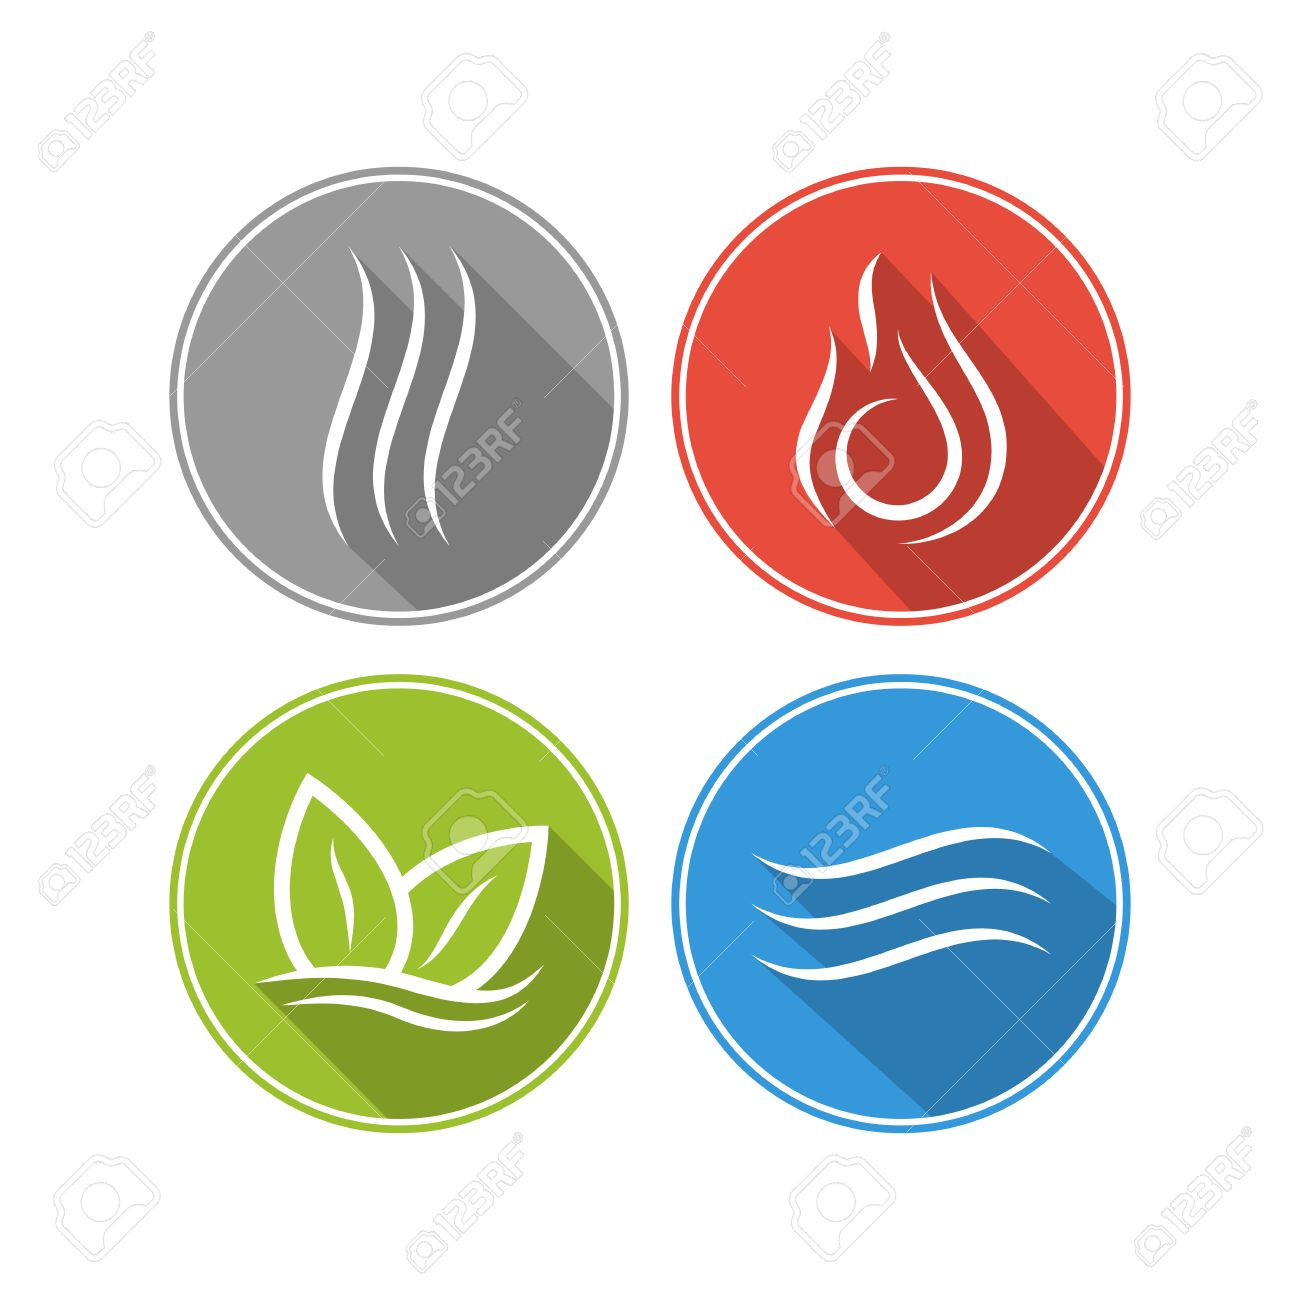 Four Forces Elements Water Fire Earth Air The Symbols Of Magic